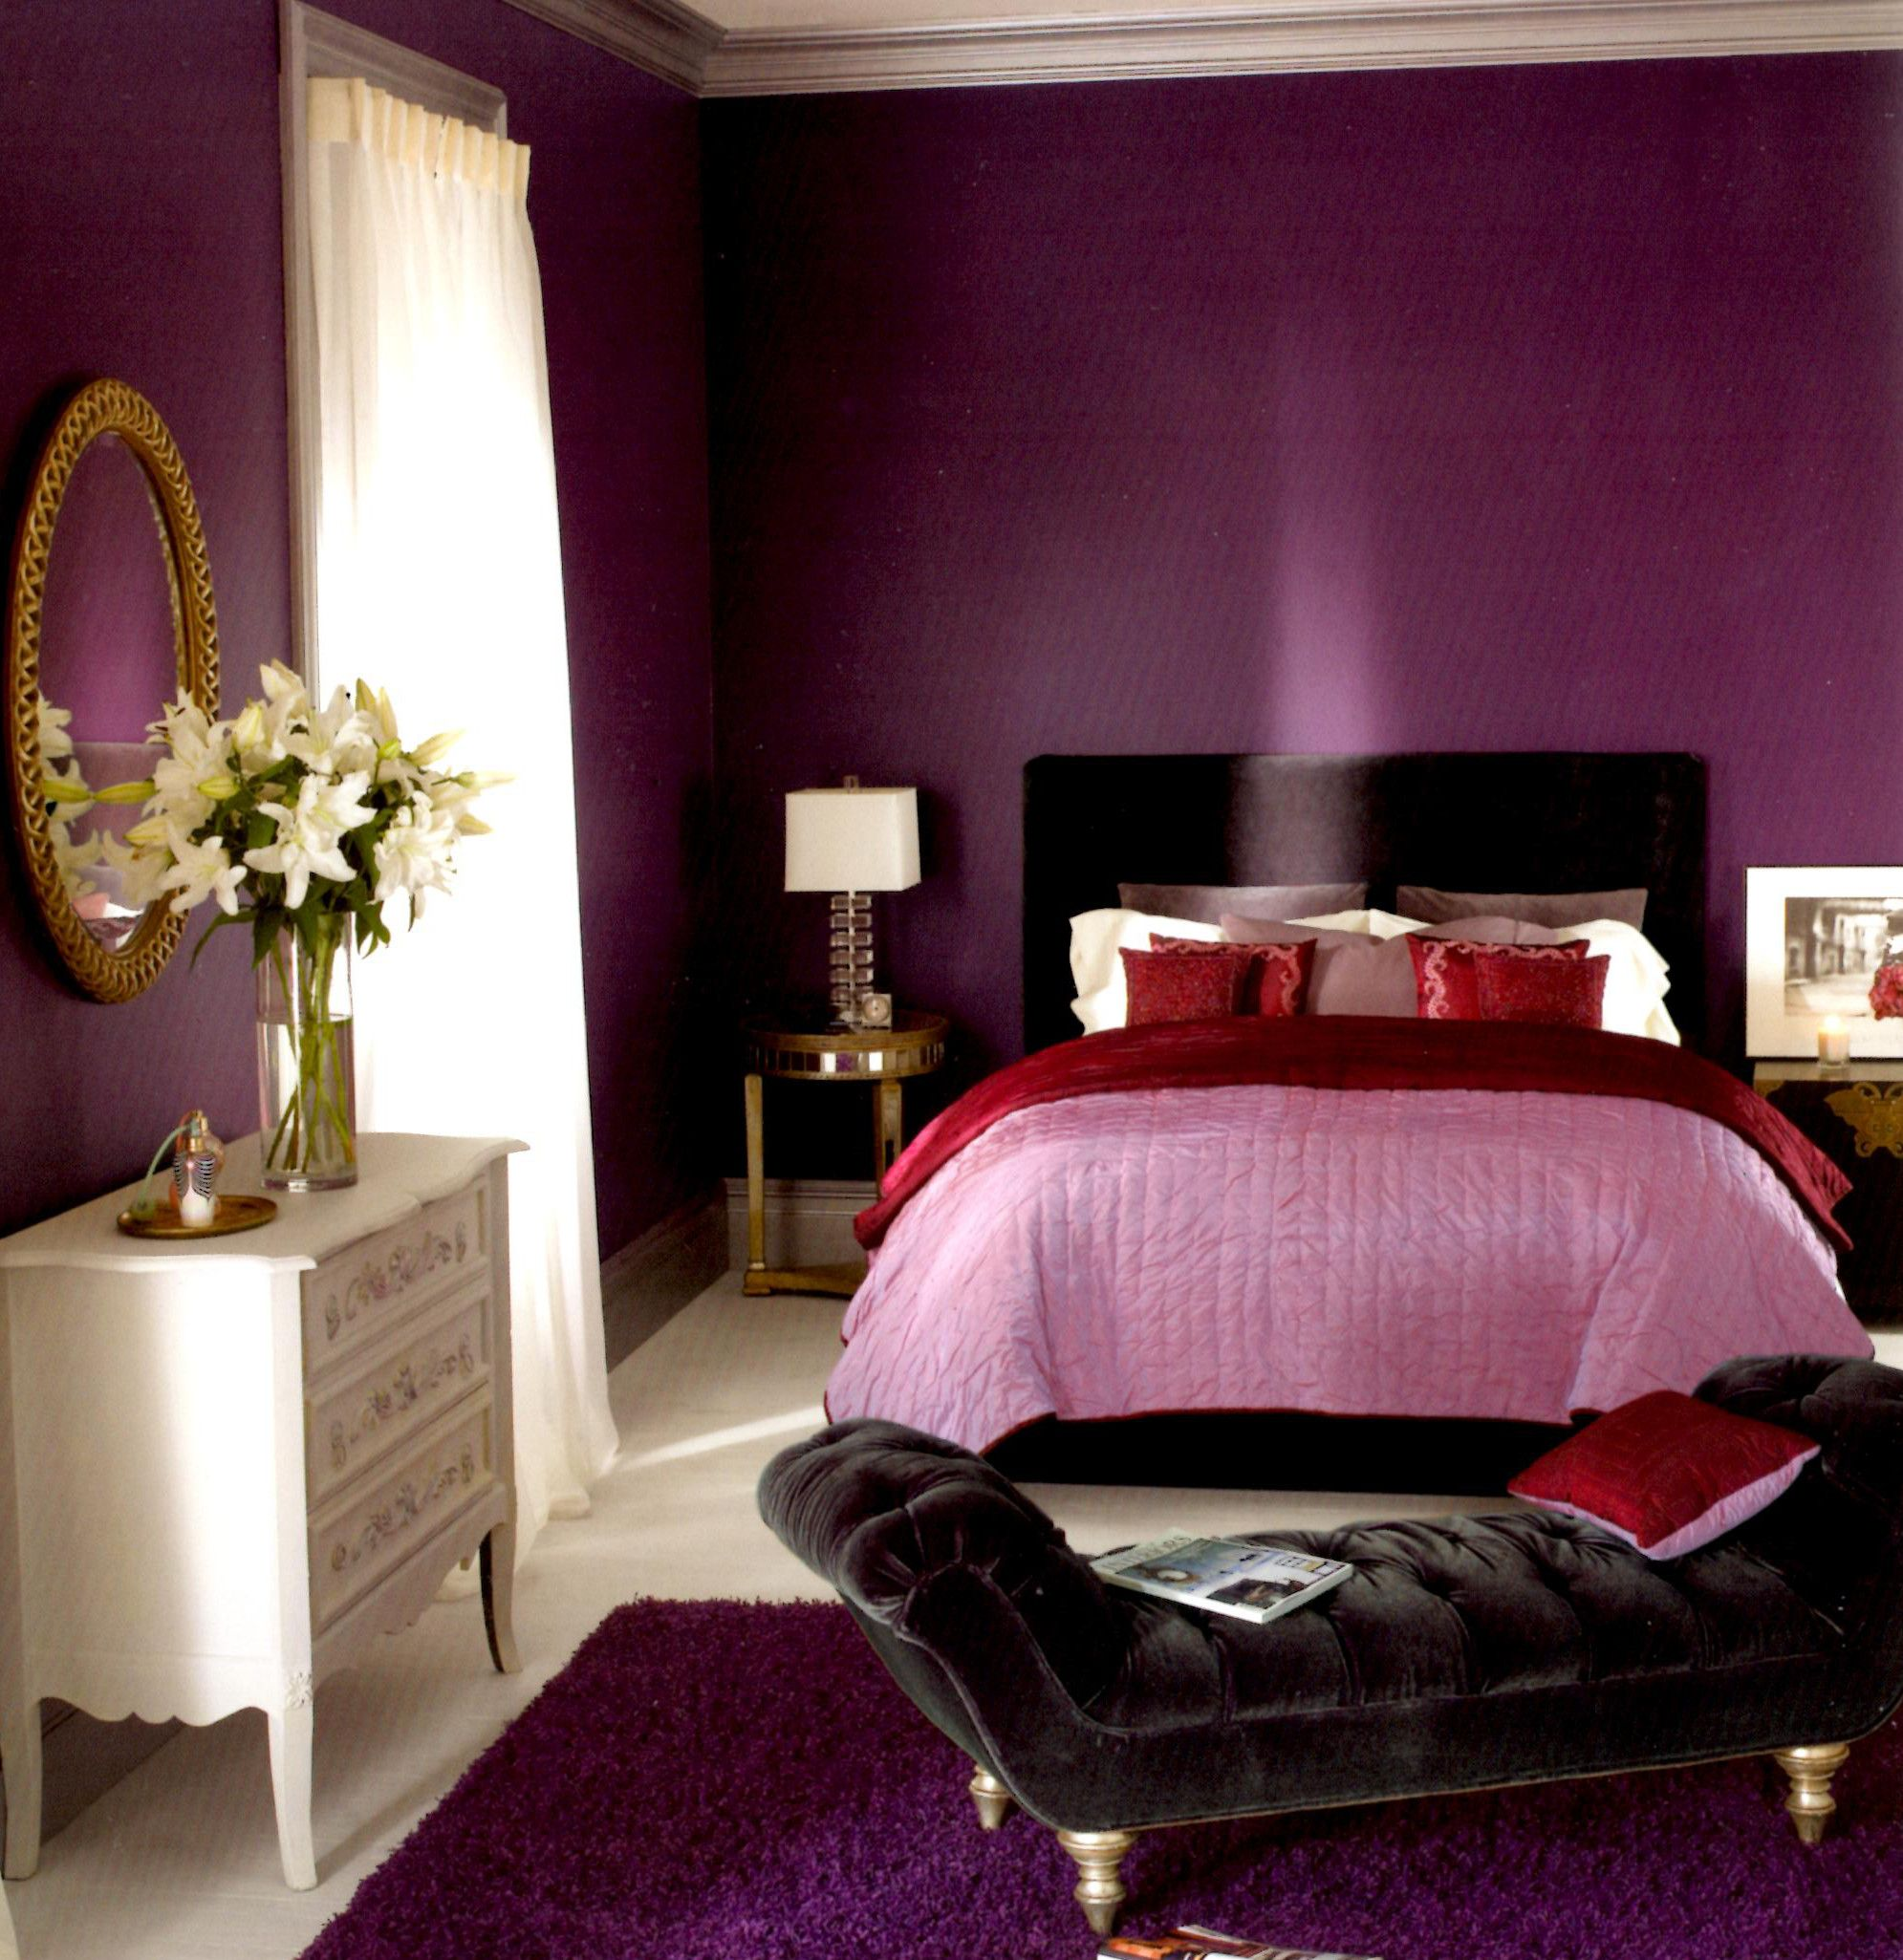 Bedroom wall paint color combinations - Remarkable Purple Wall Paneling Colors As Smart Bedroom Paint Ideas In Teenage Bedroom Decor Also White